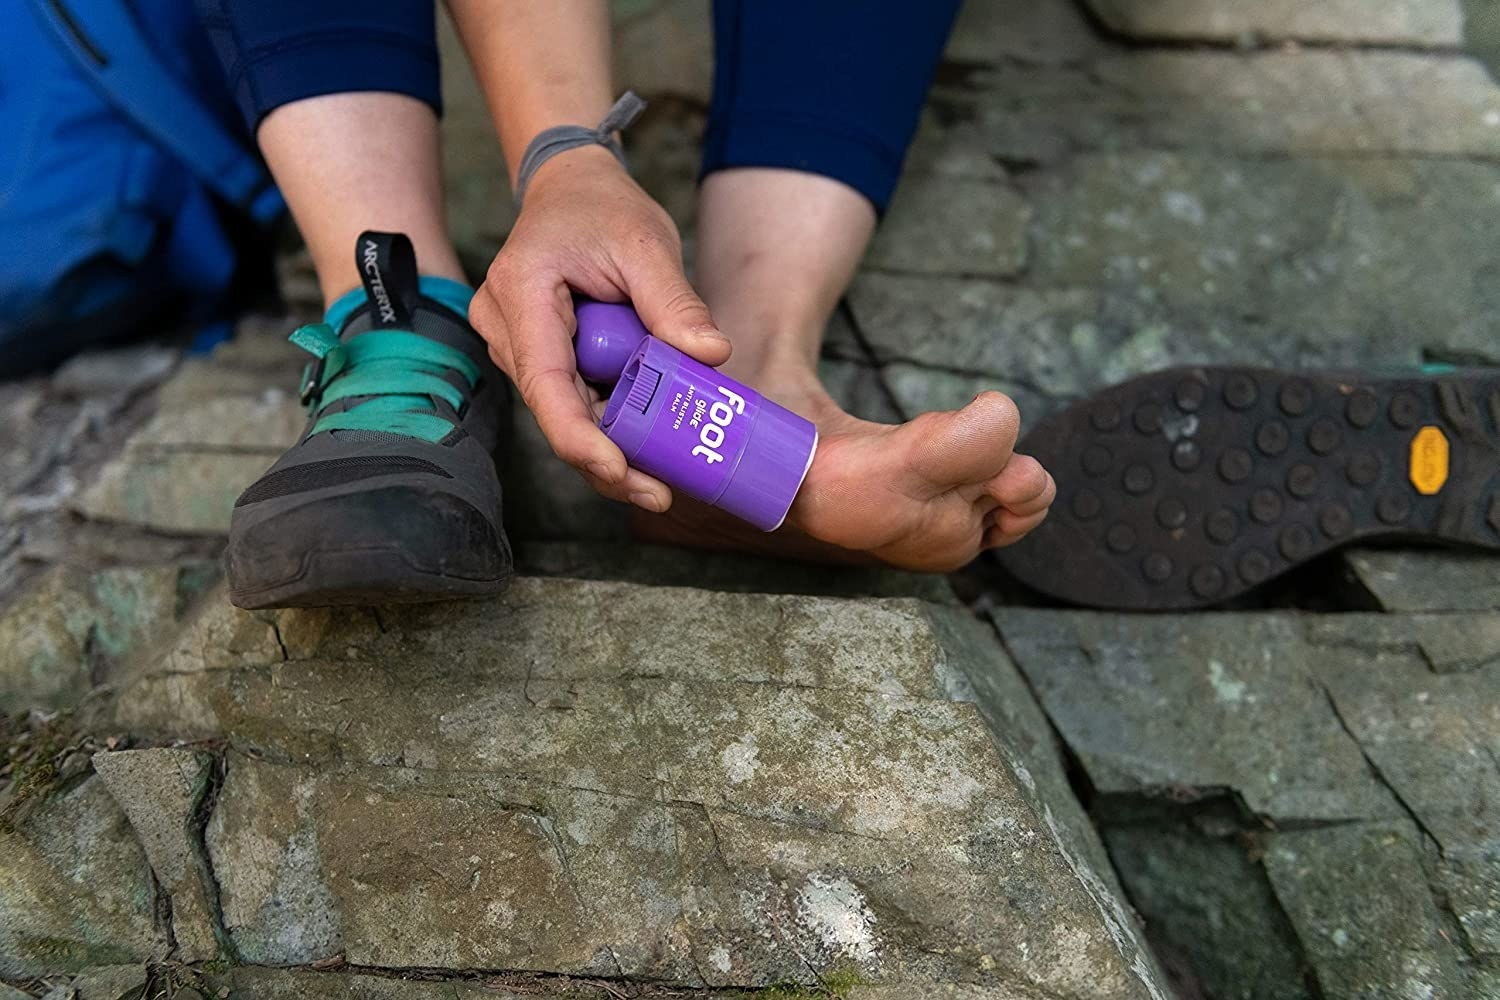 A deodorant-type stick that you rub on your feet to prevent blisters